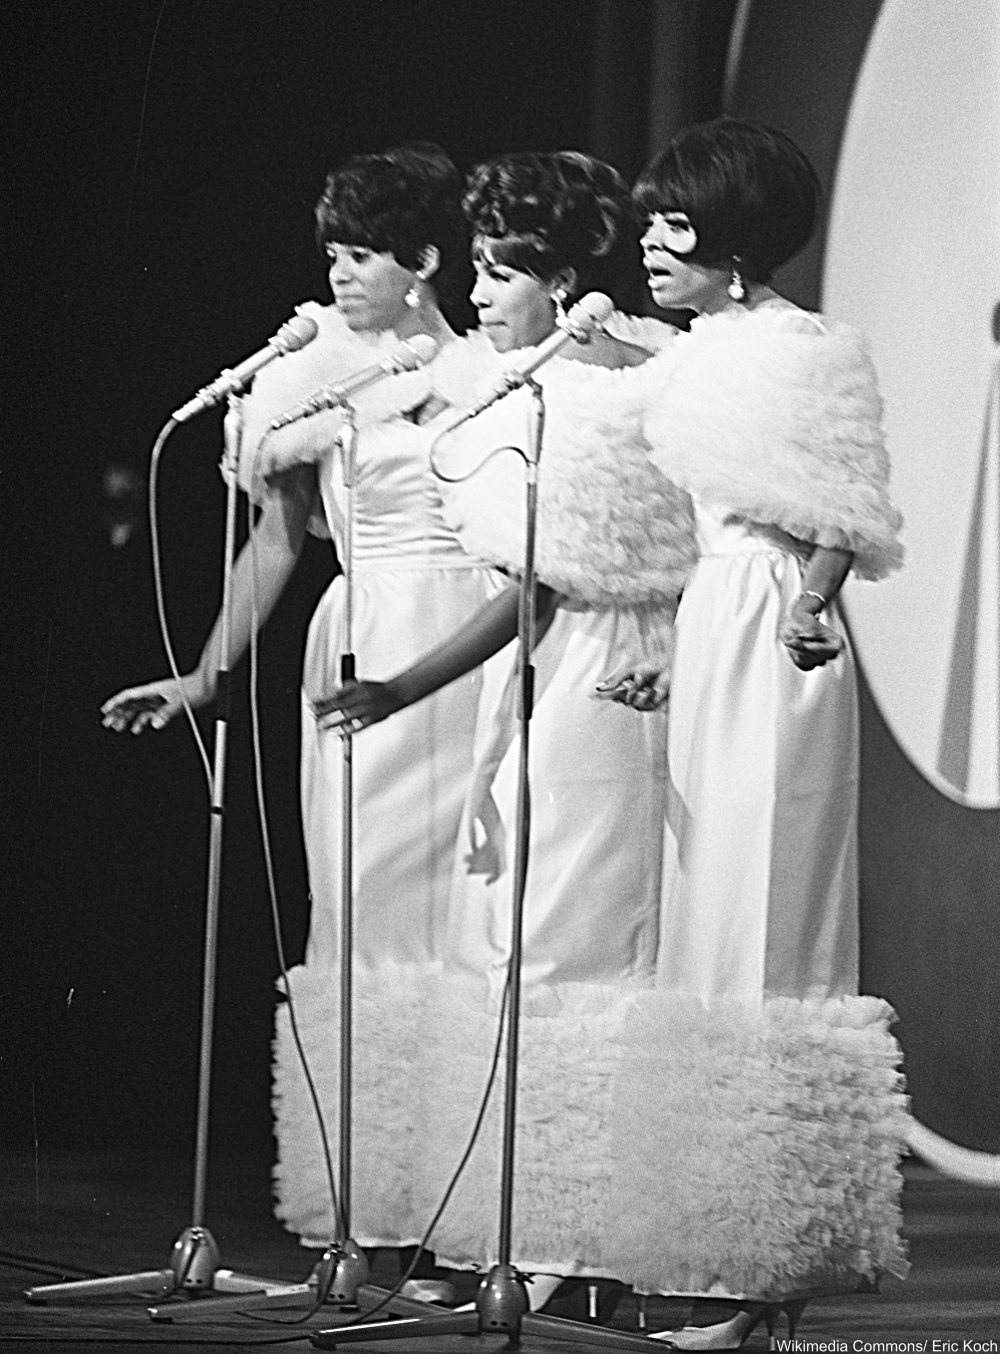 Diana Ross and the Supremes circa 1965